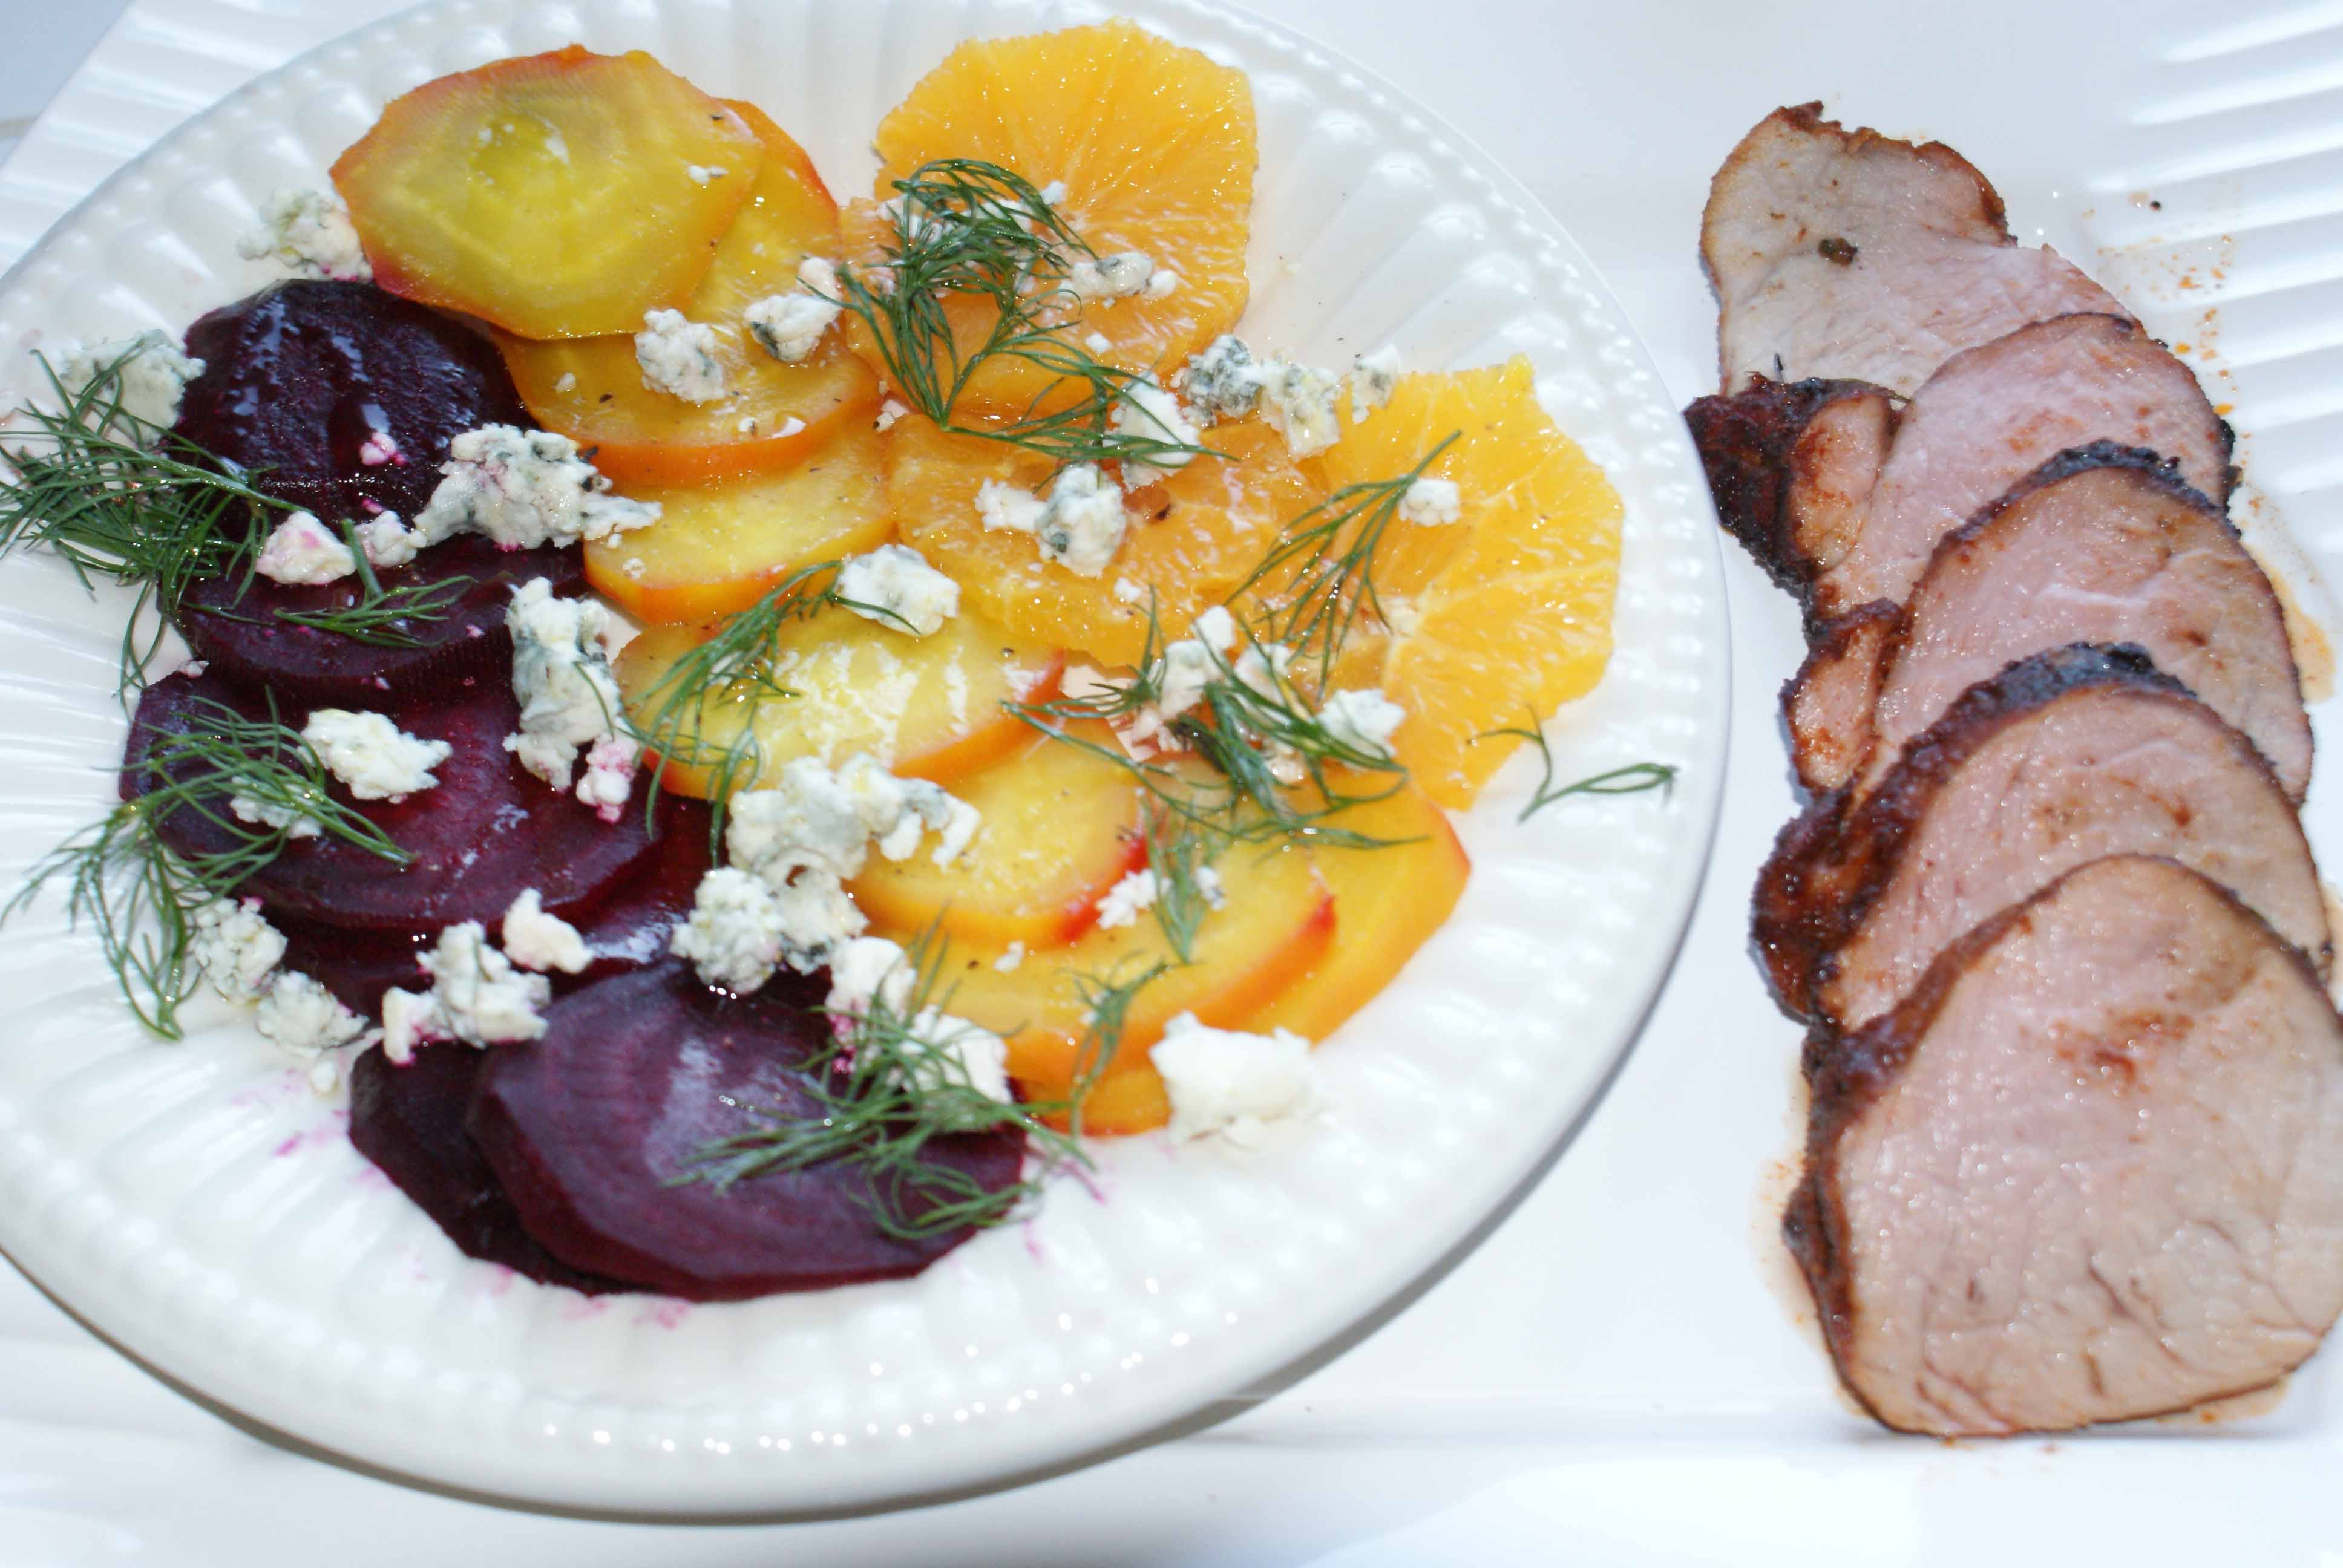 Orange/Beet Salad with Pork Tenderloin.